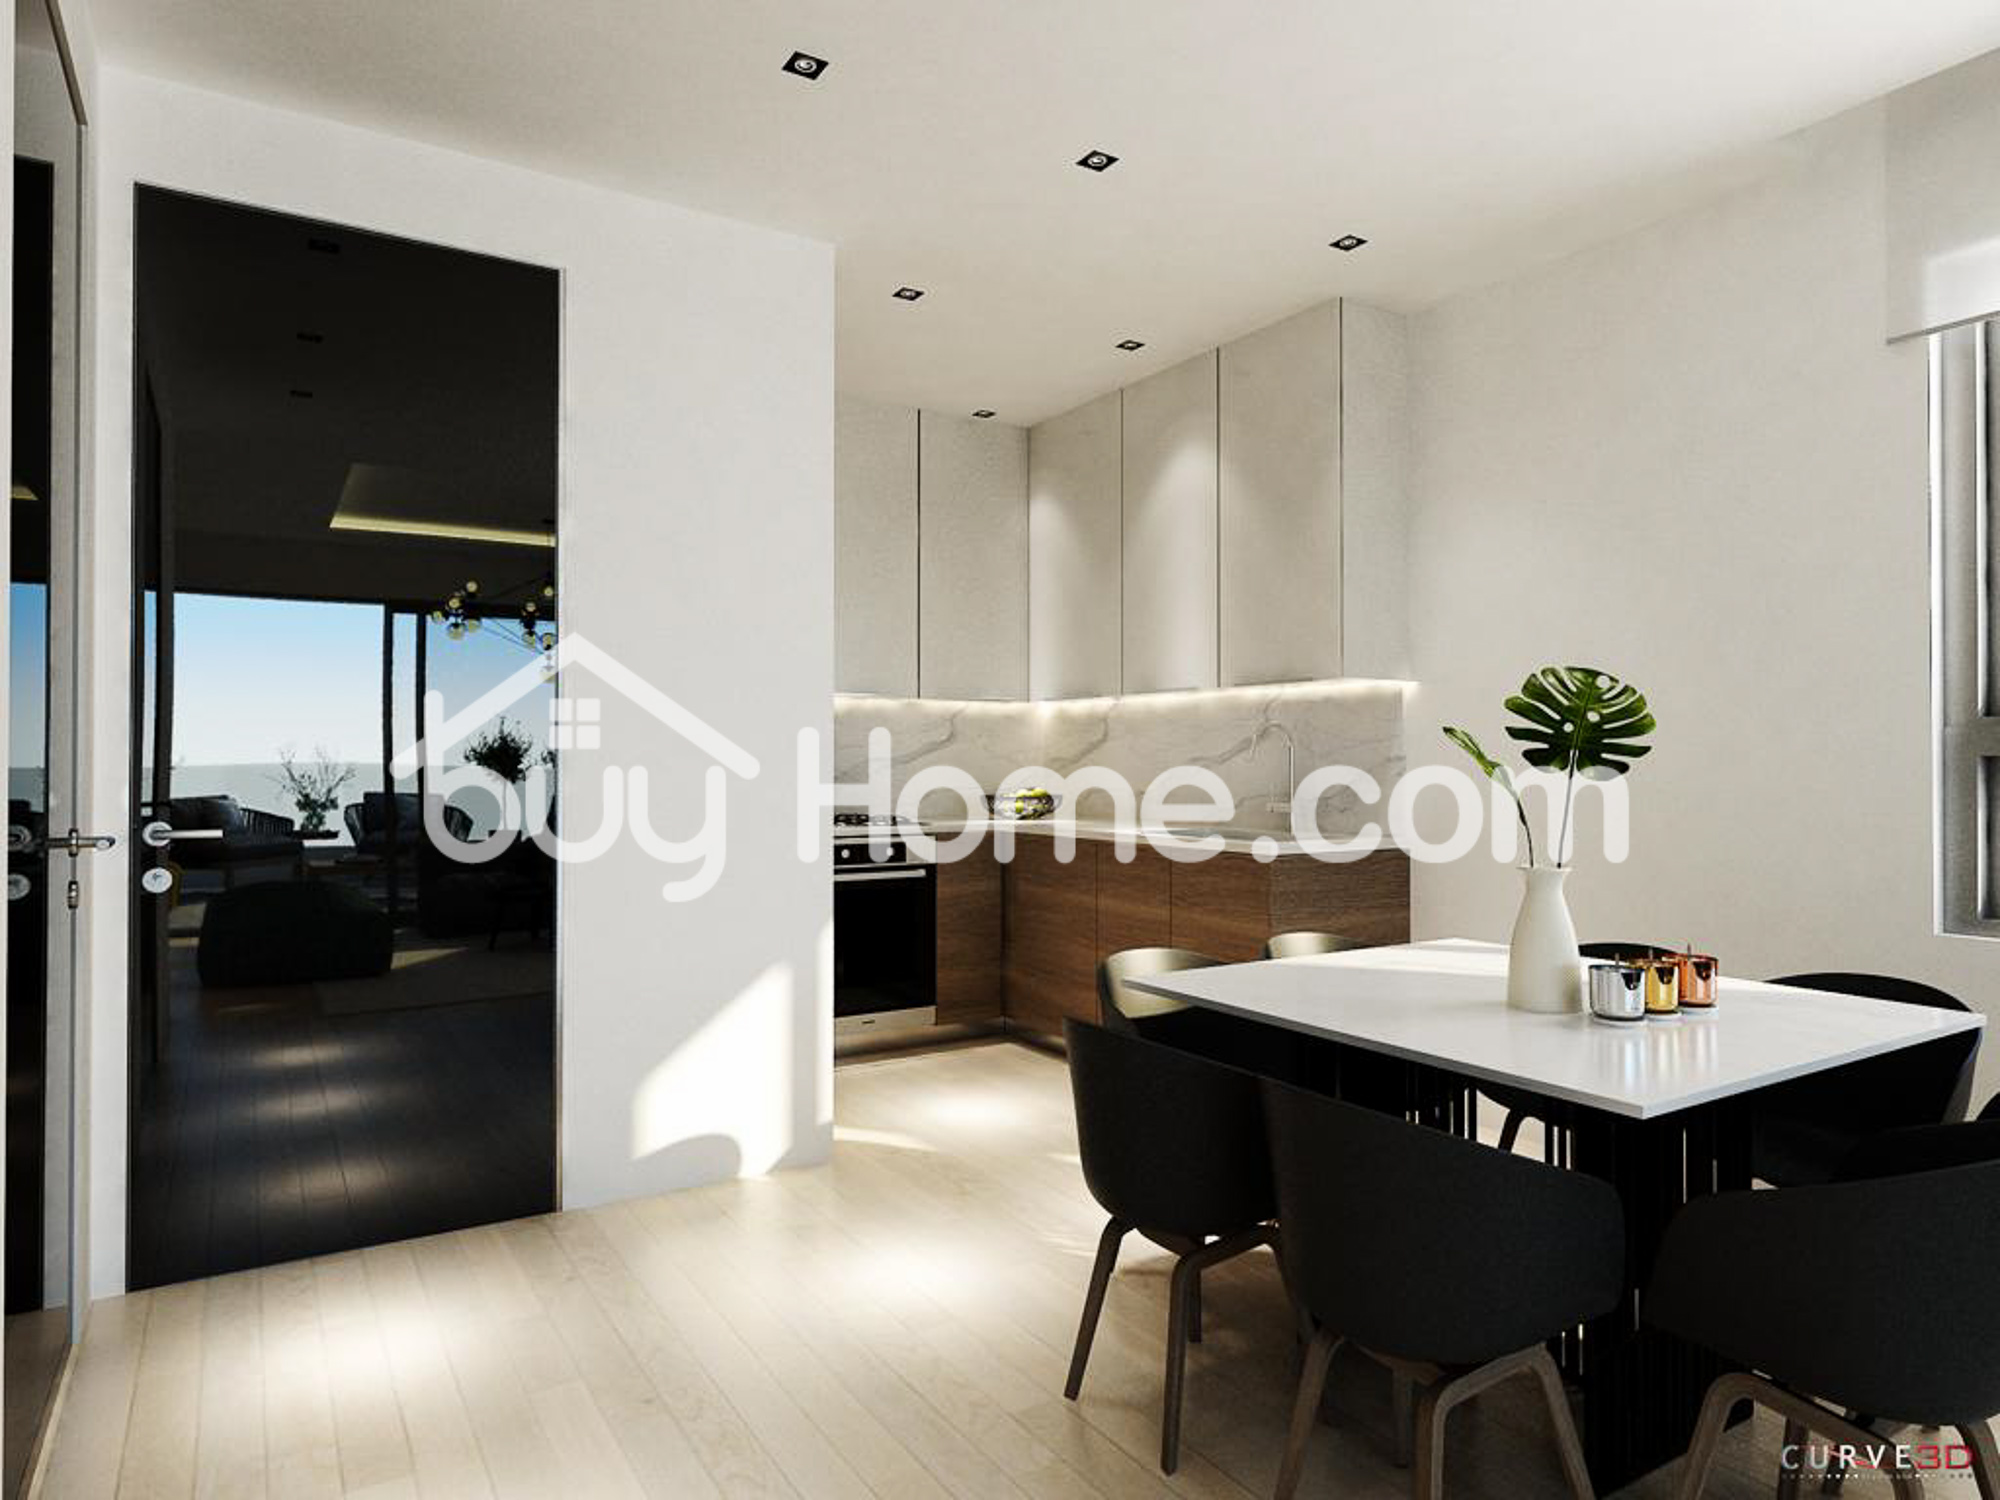 2 BDR apartment | BuyHome